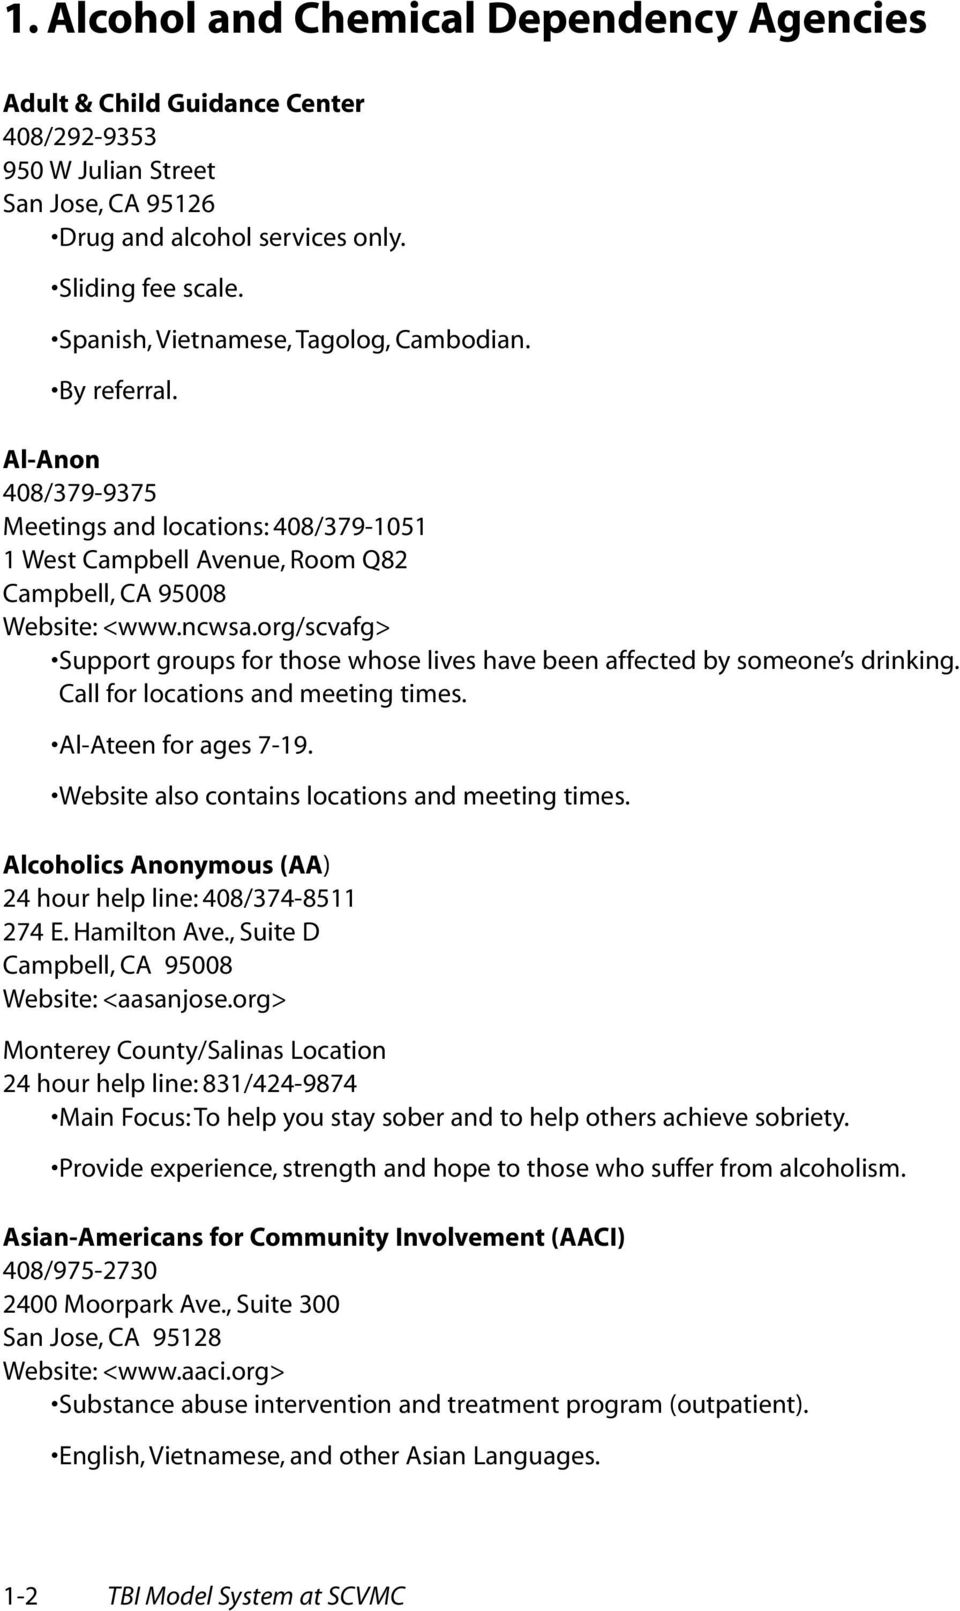 org/scvafg> Support groups for those whose lives have been affected by someone s drinking. Call for locations and meeting times. Al-Ateen for ages 7-19.